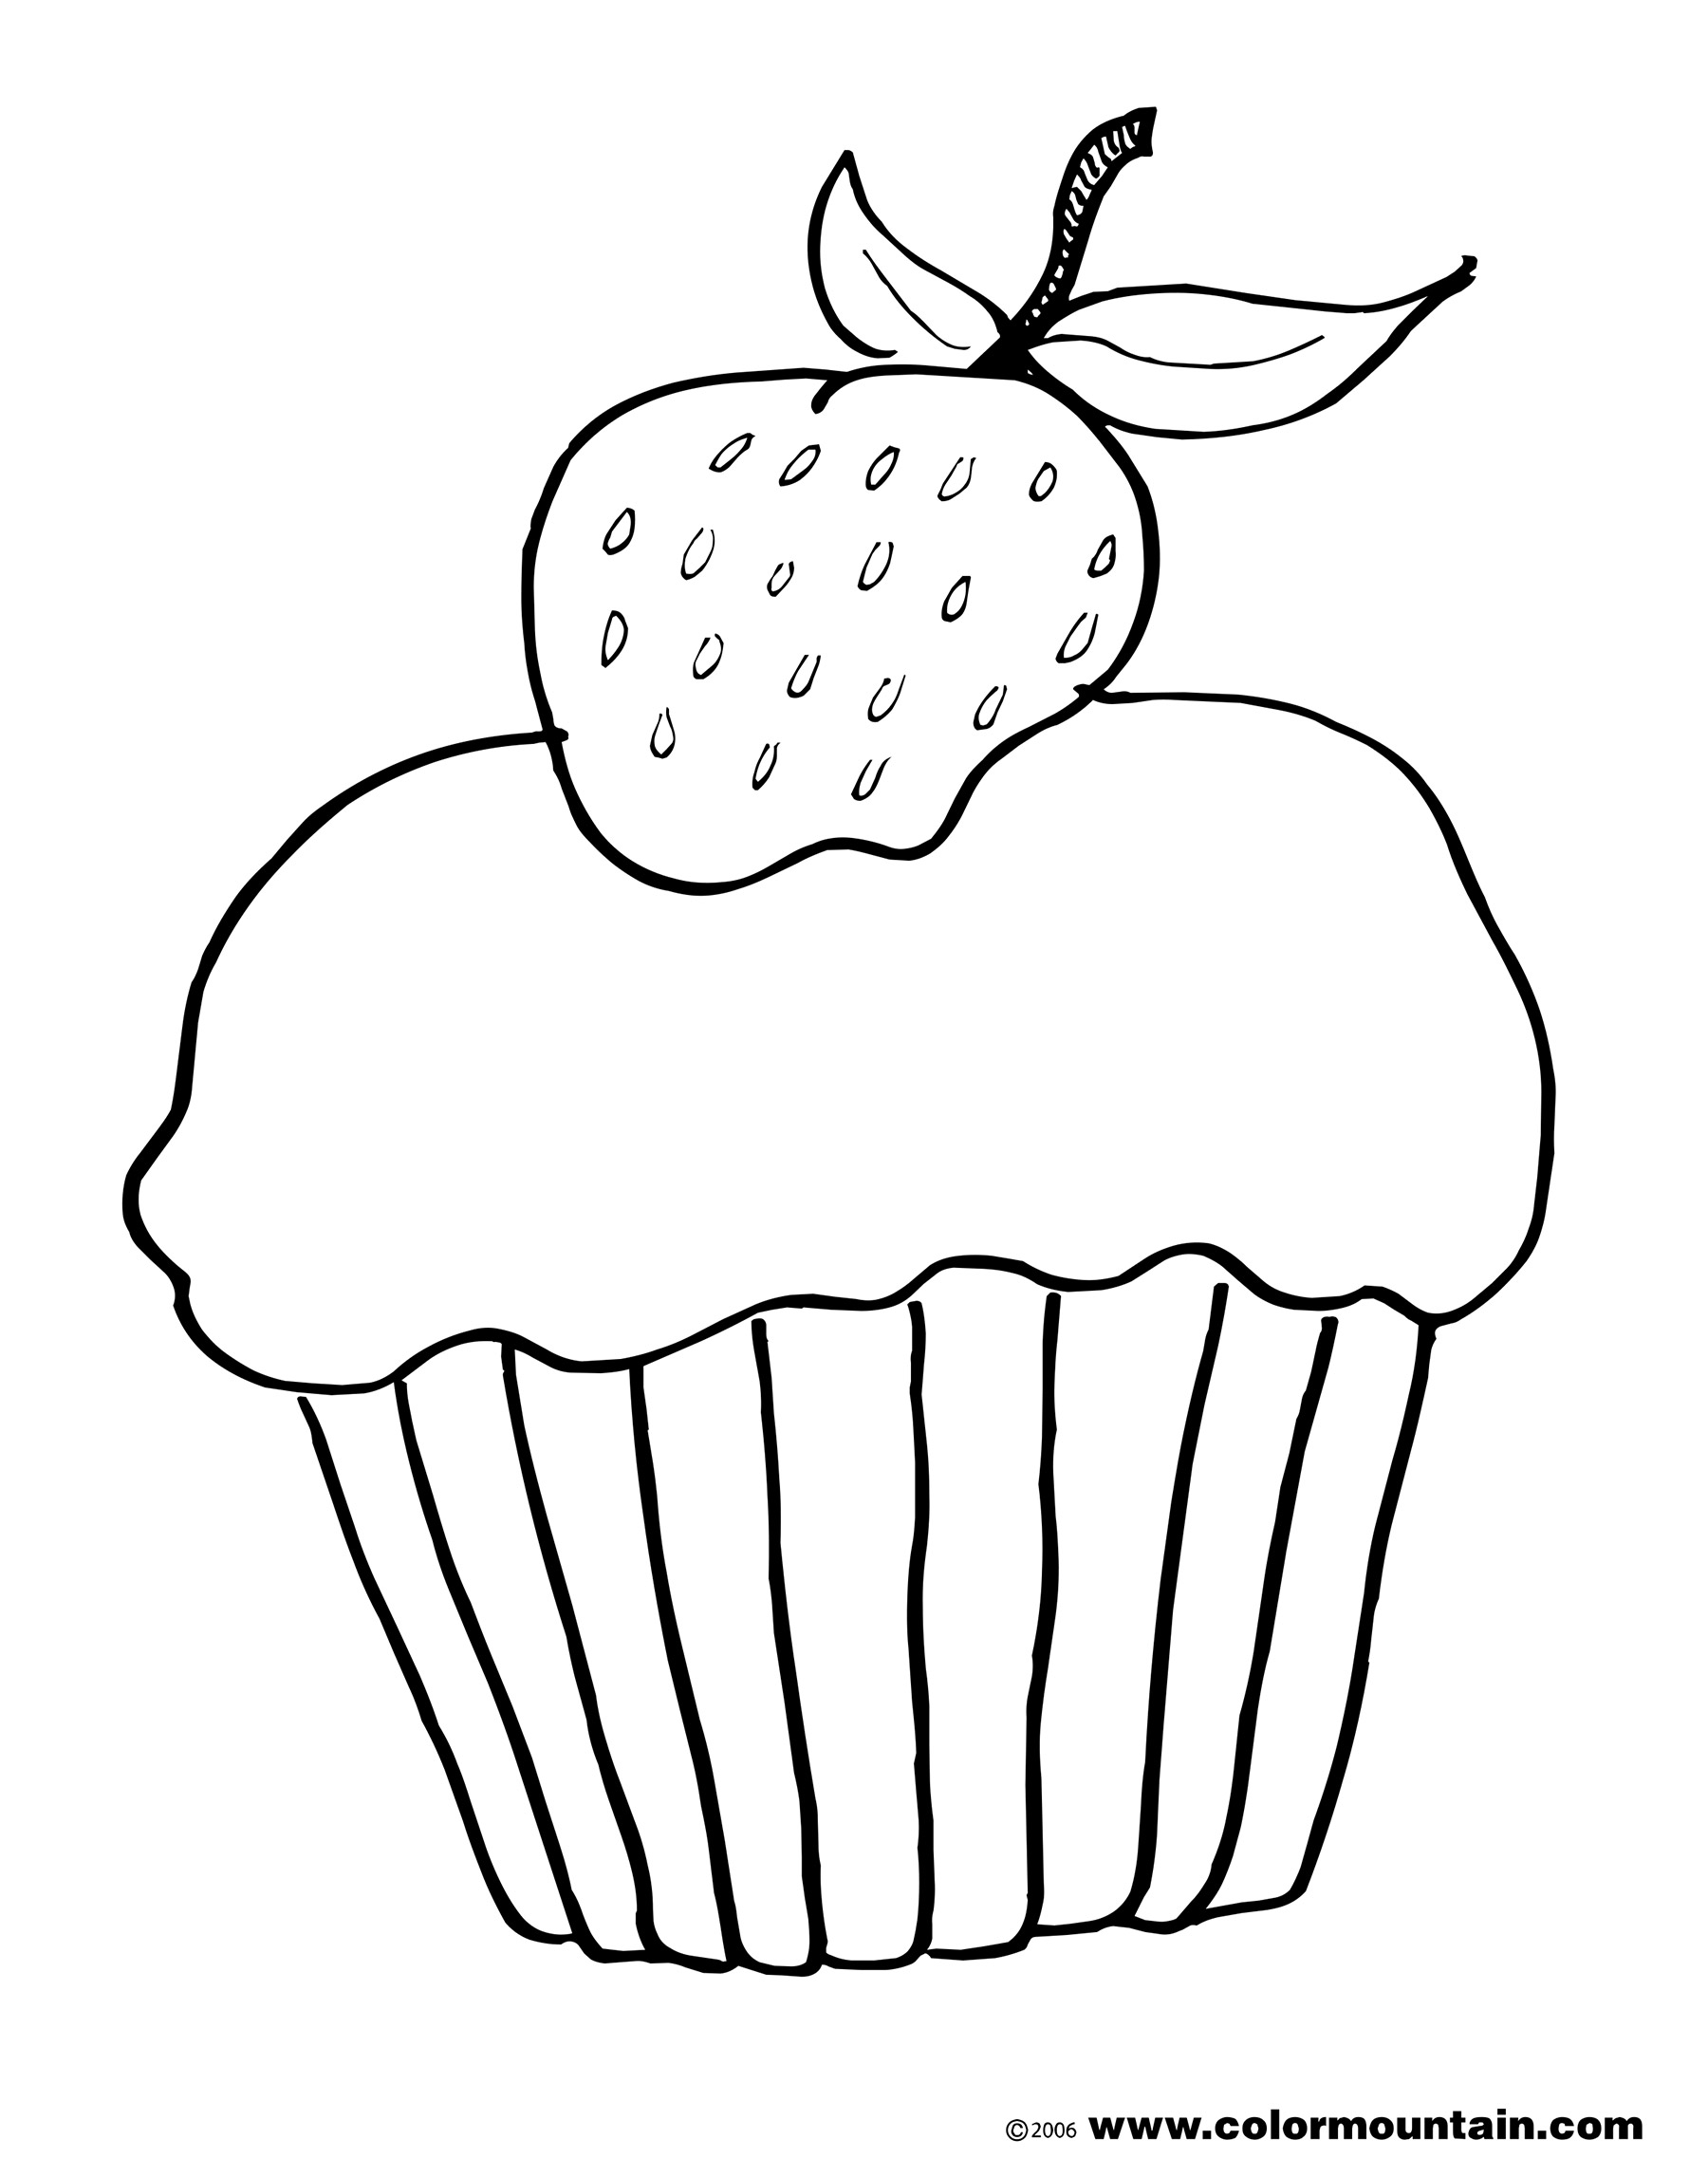 leaf coloring pages images cupcake - photo#24